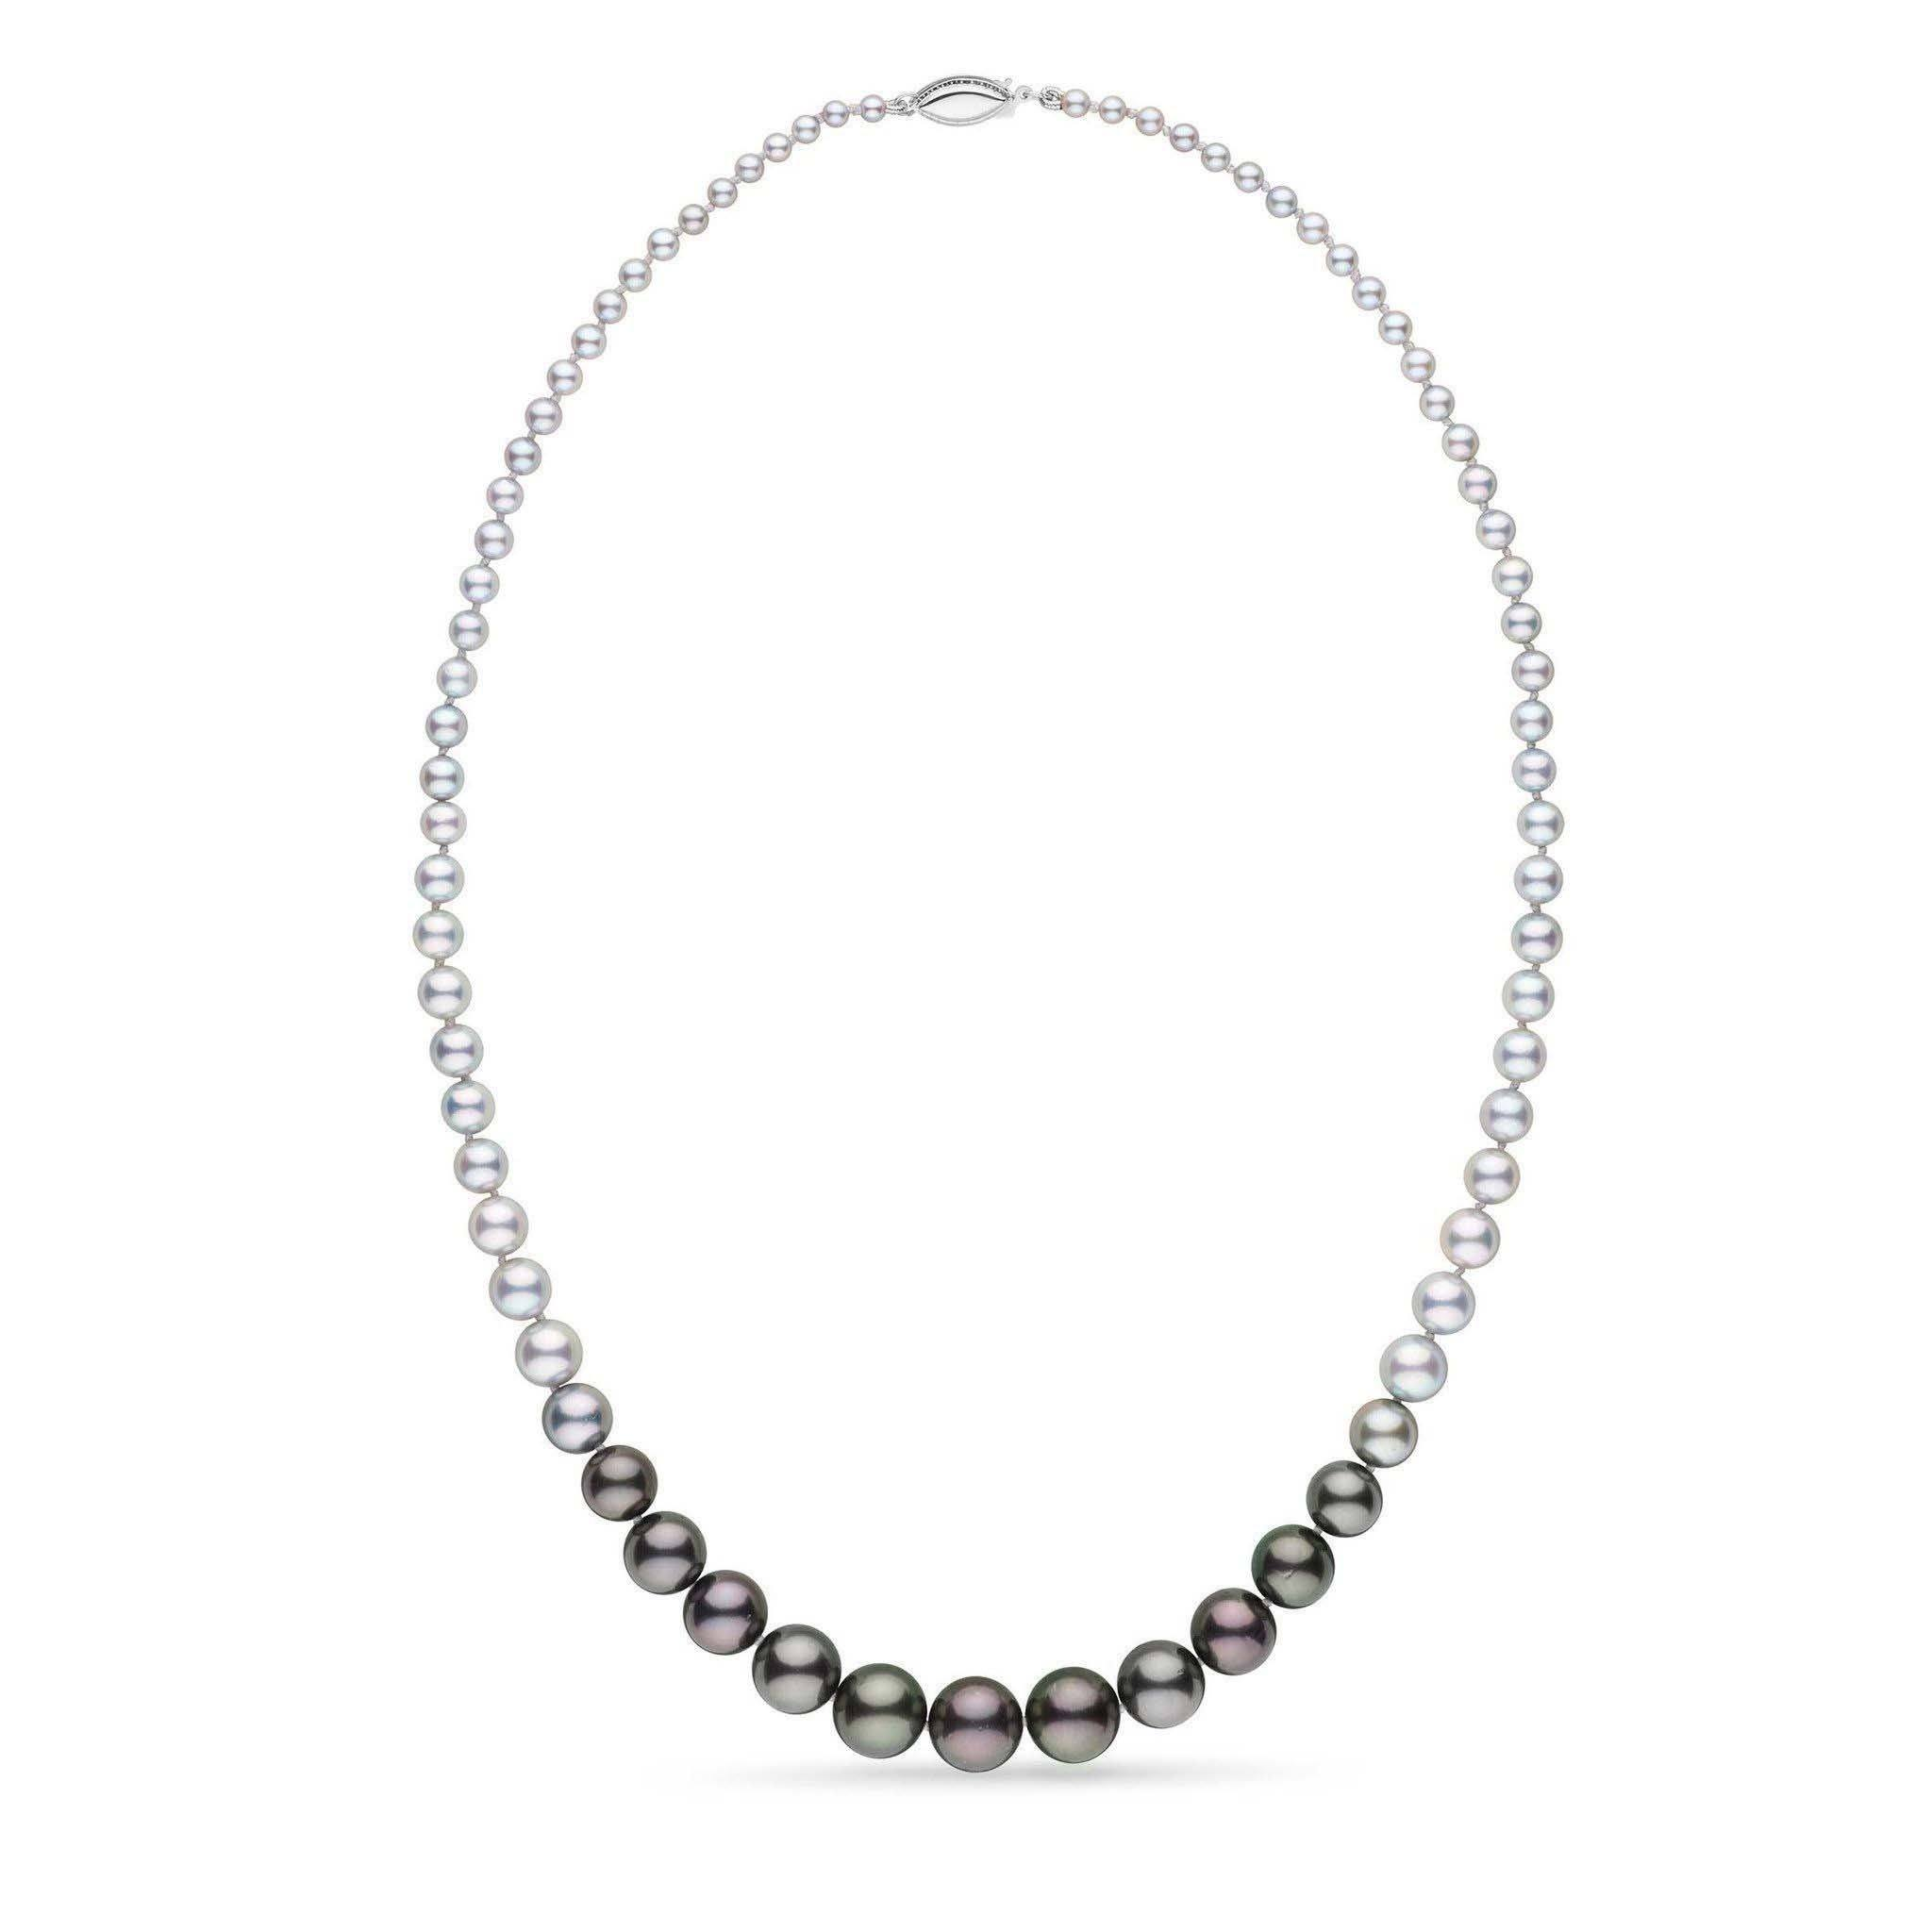 Ombre Collection 3.0-10.0 mm Akoya and Tahitian Pearl Necklace